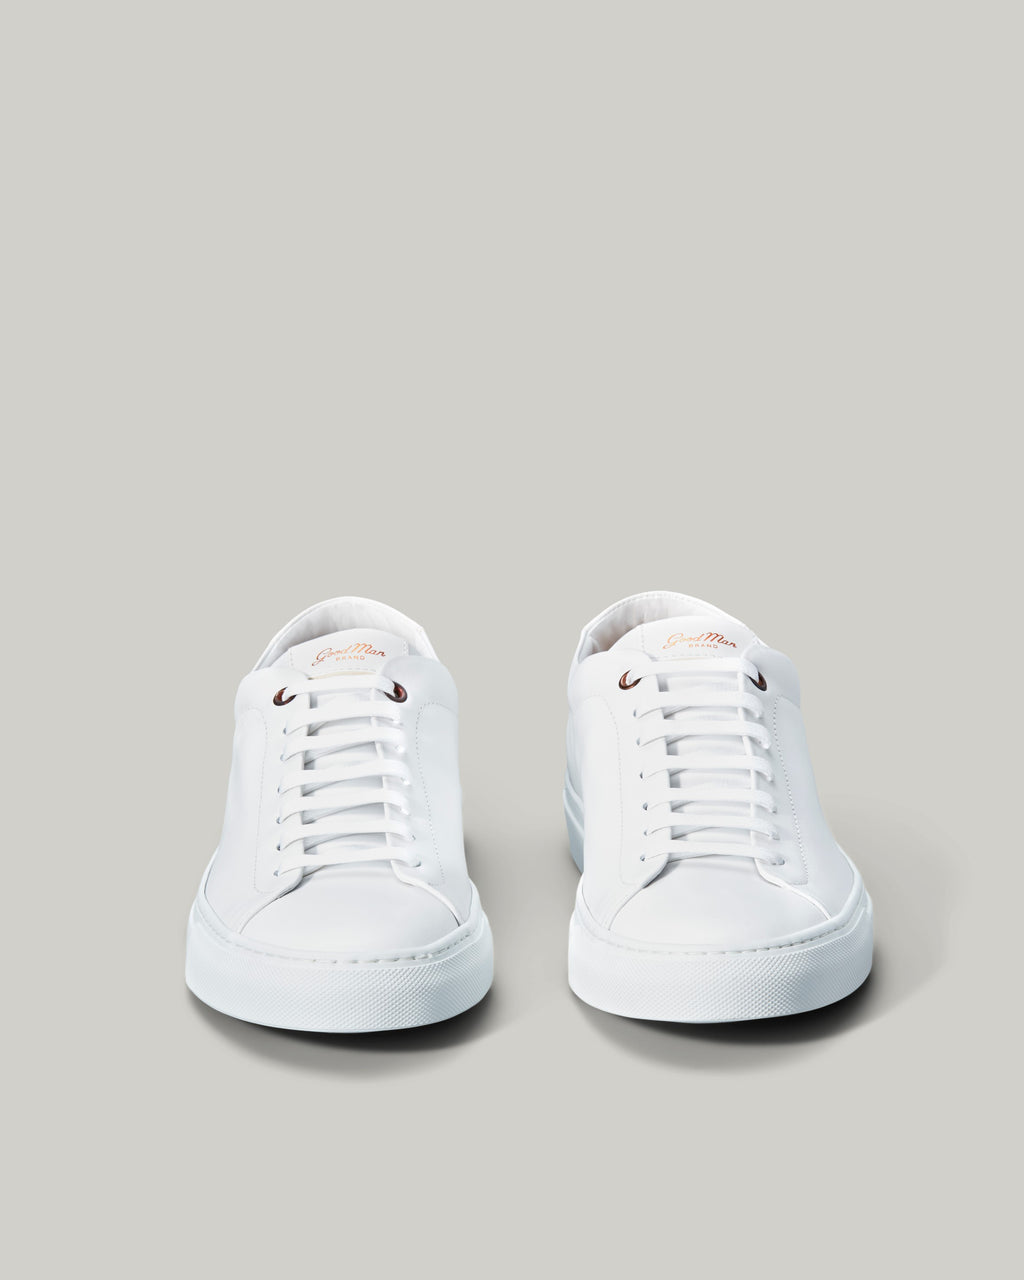 Edge Lo-Top Sneaker - White - Good Man Brand - Edge Lo-Top Sneaker - White